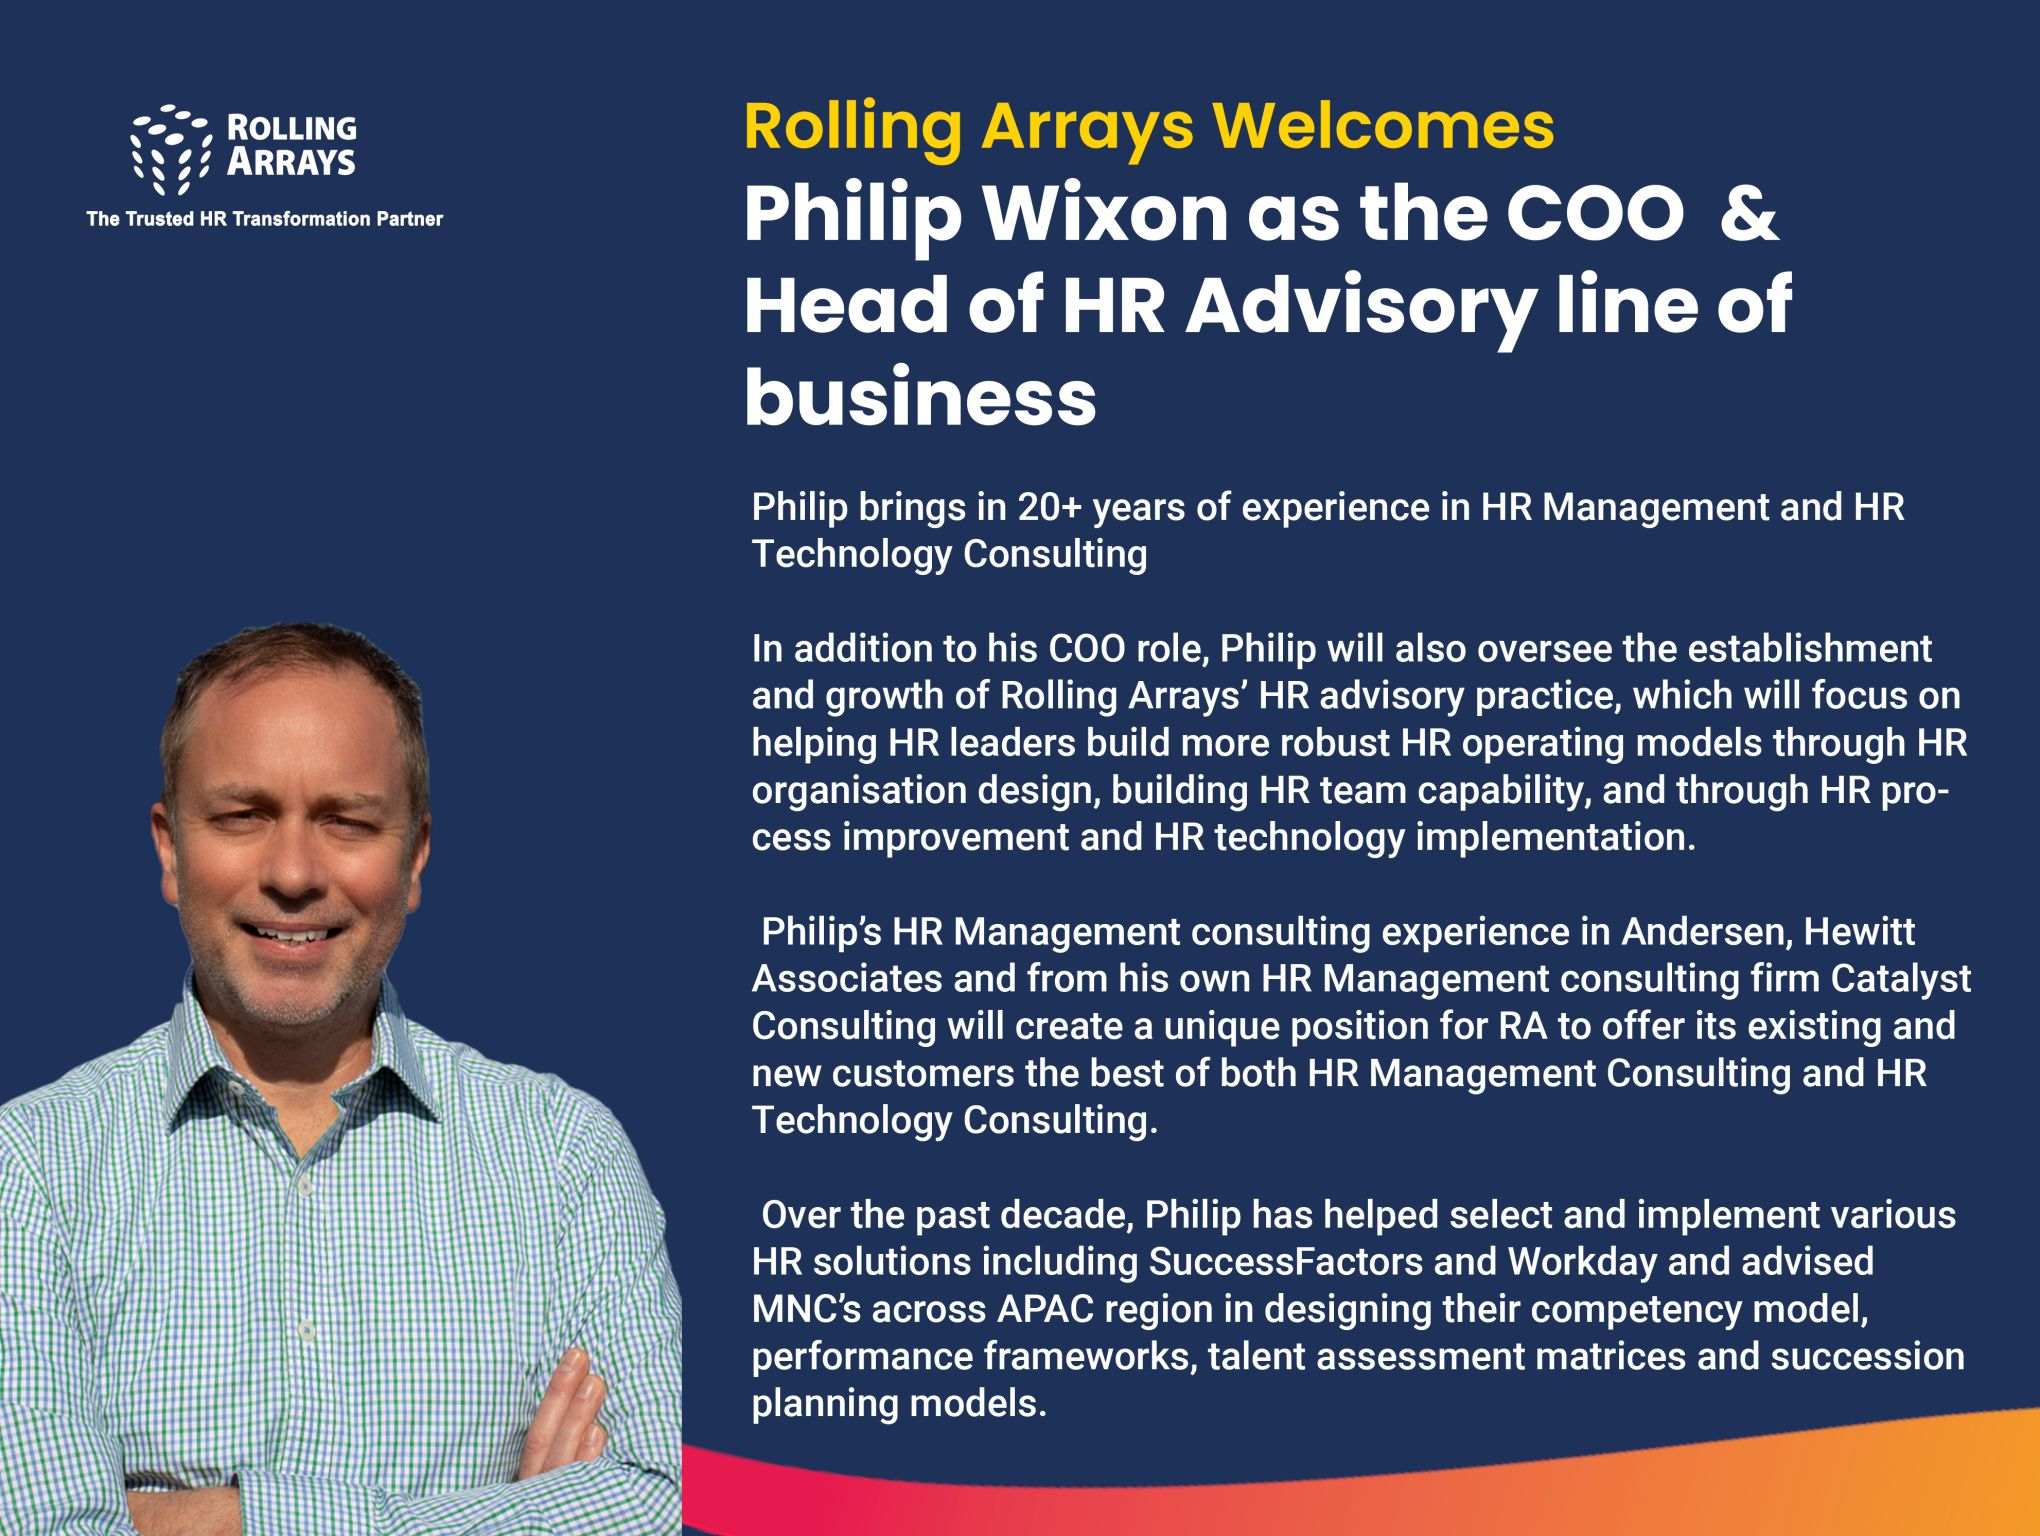 Rolling Arrays announces appointment of Philip Wixon as the Chief Operating Officer